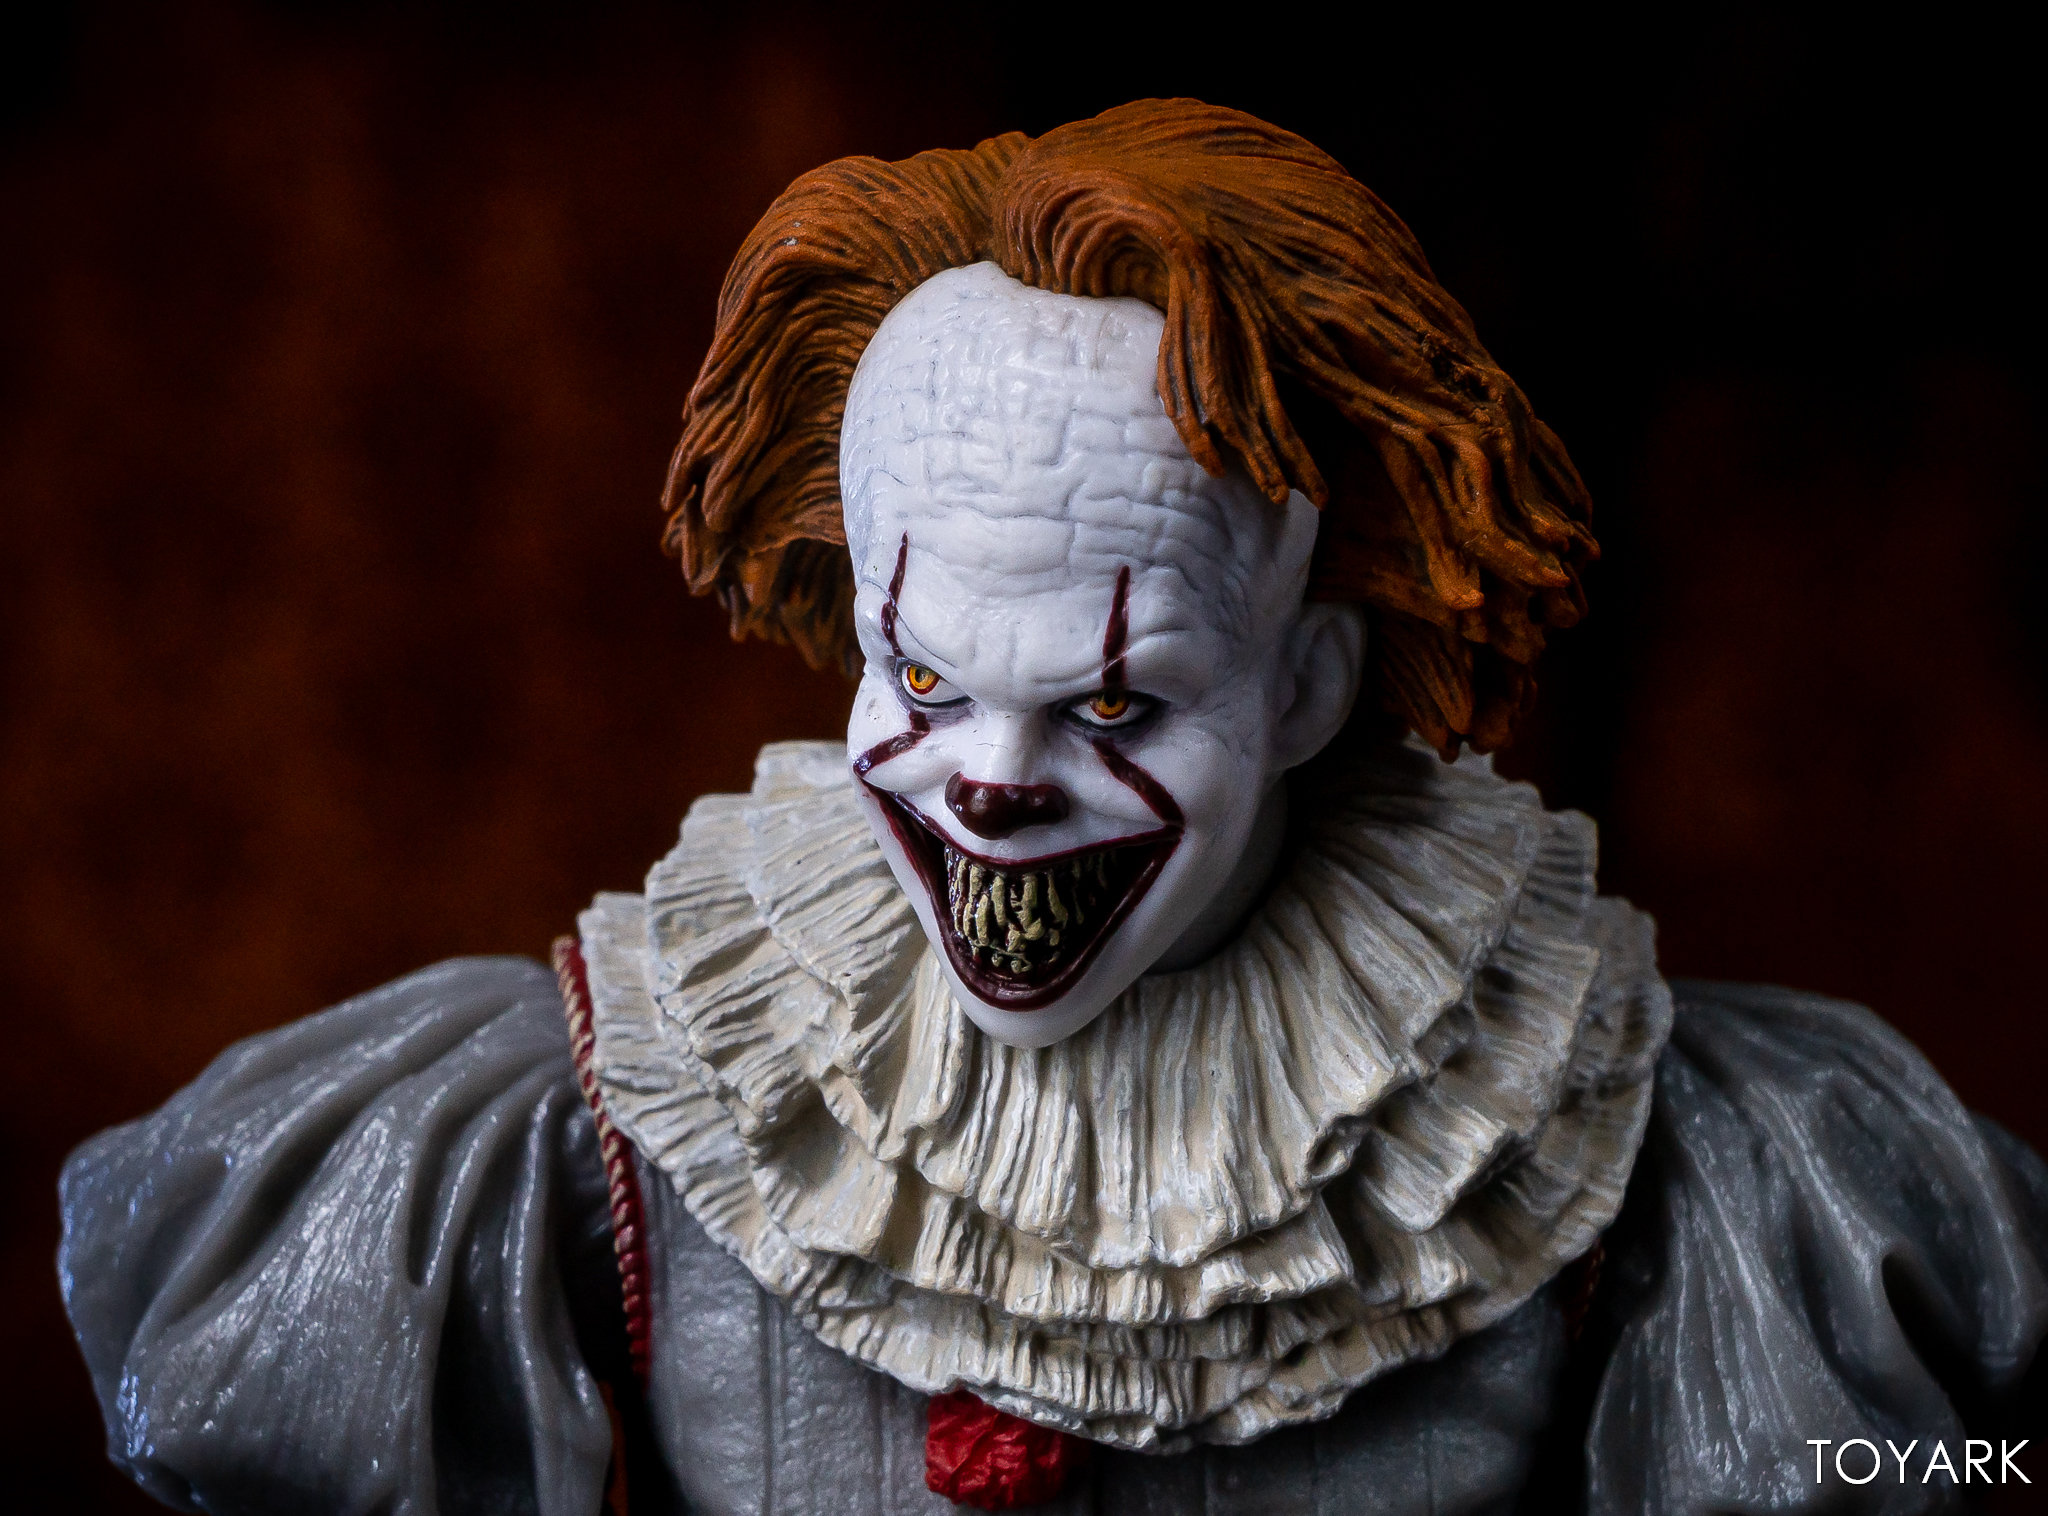 https://news.toyark.com/wp-content/uploads/sites/4/2019/03/Well-House-Pennywise-Gallery-021.jpg